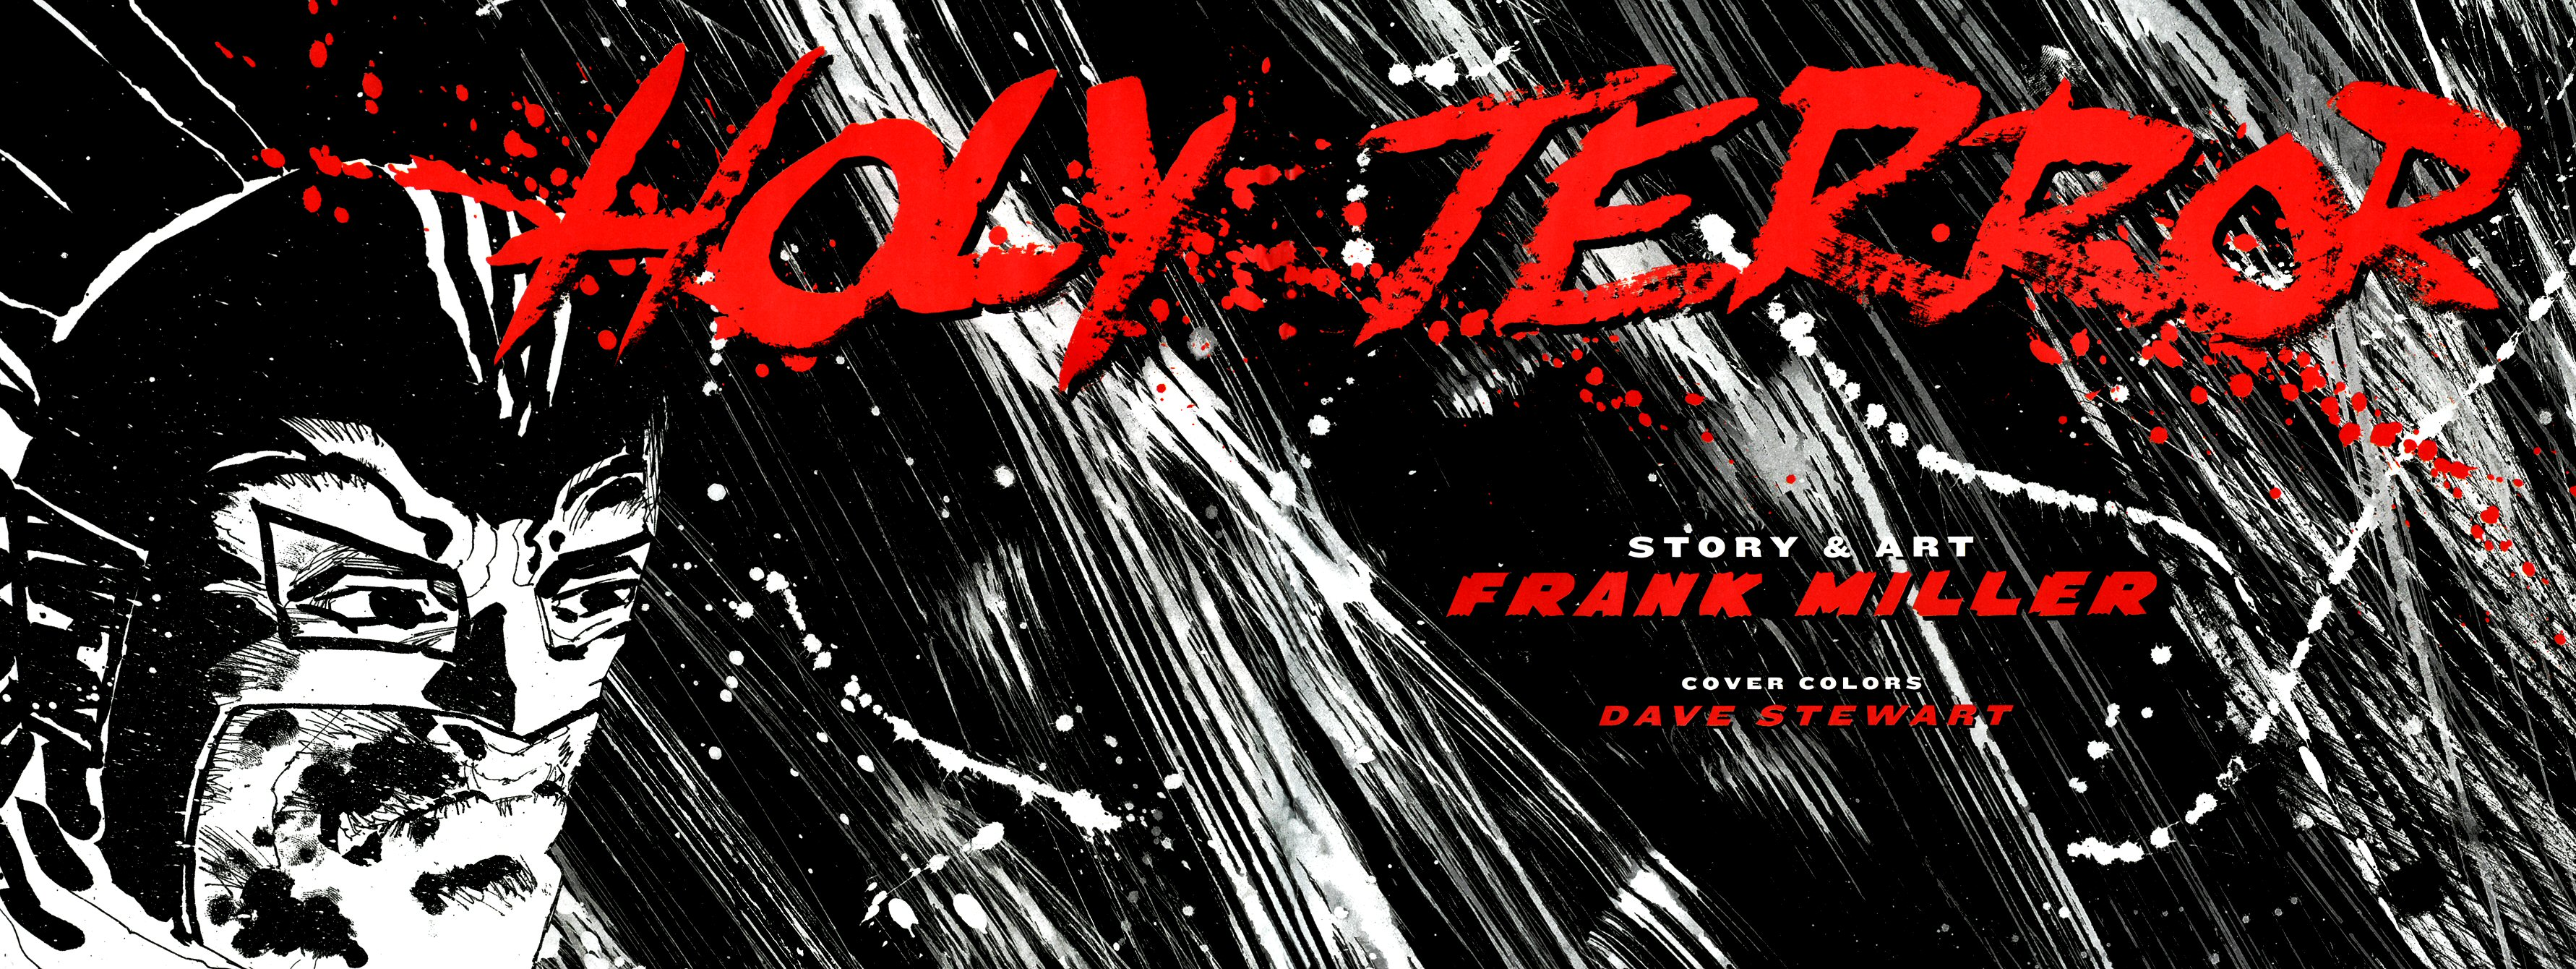 Read online Frank Miller's Holy Terror comic -  Issue # TPB - 6